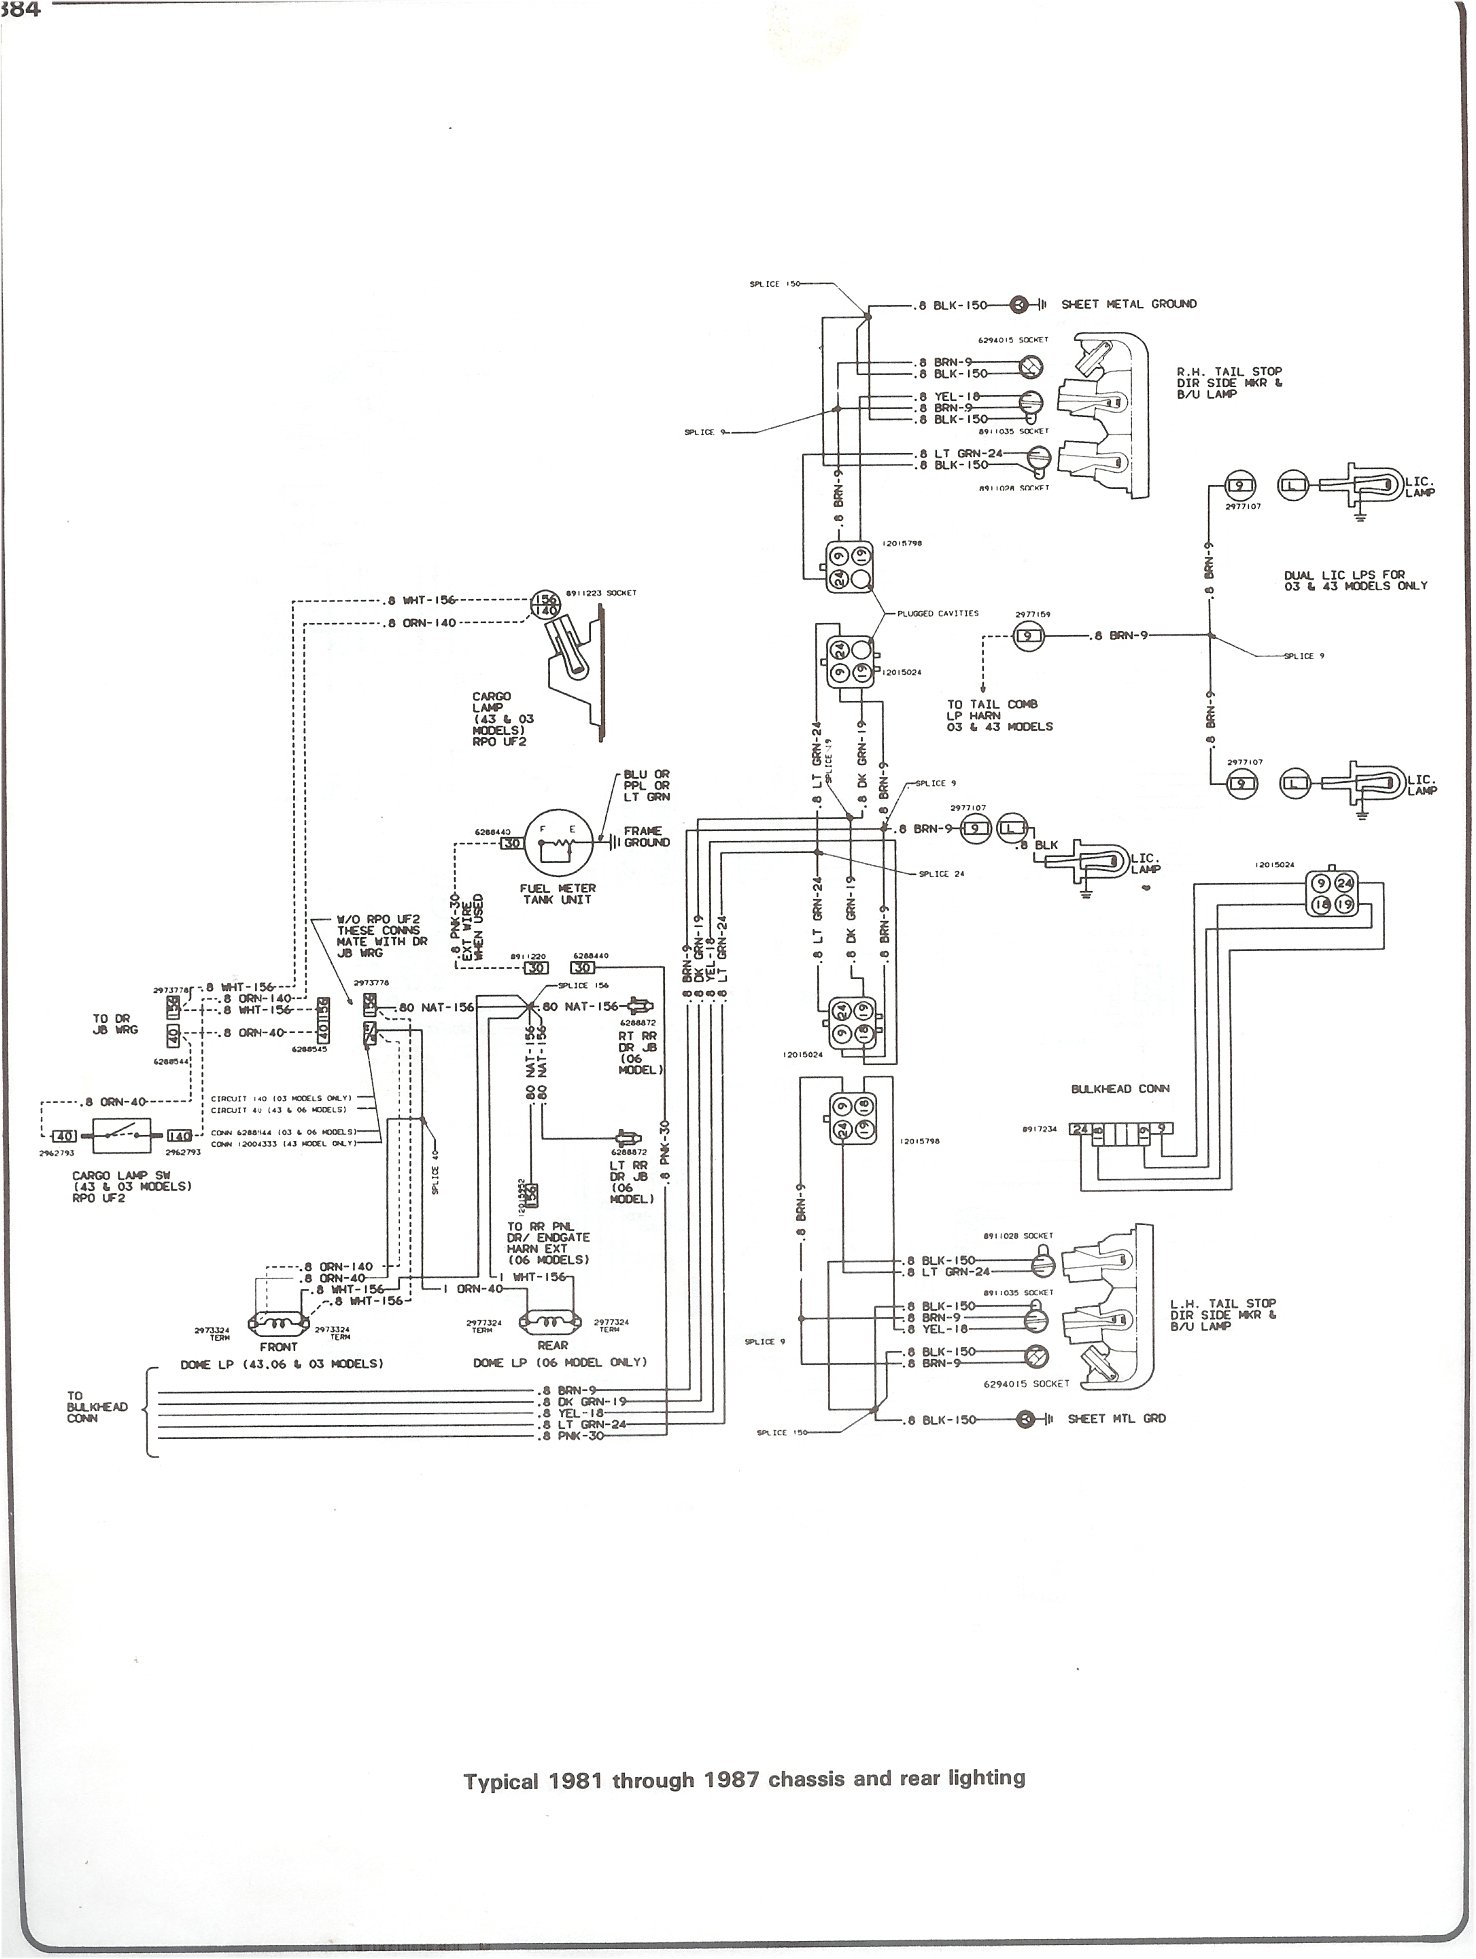 81 87_chass_rr_light complete 73 87 wiring diagrams 1988 GMC Sierra 1500 at panicattacktreatment.co